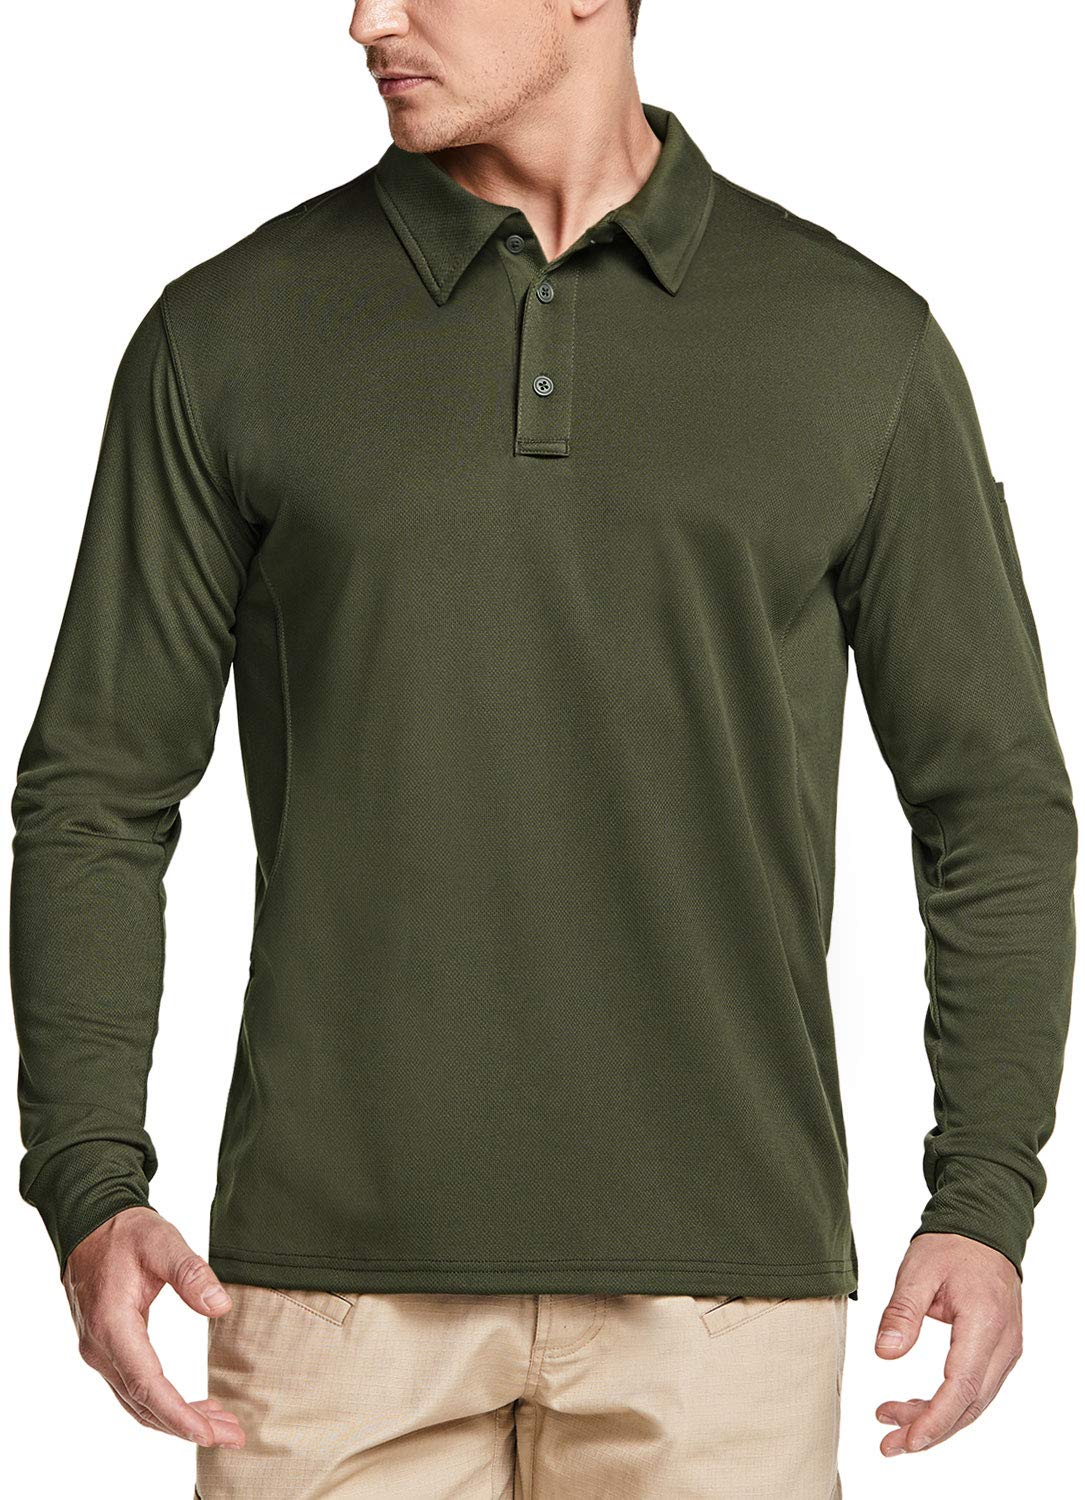 CQR Men's Long Sleeve Tactical Work Shirts Dry Fit Lightweight Polo Shirts Outdoor Performance UPF 50+ Collared Shirt